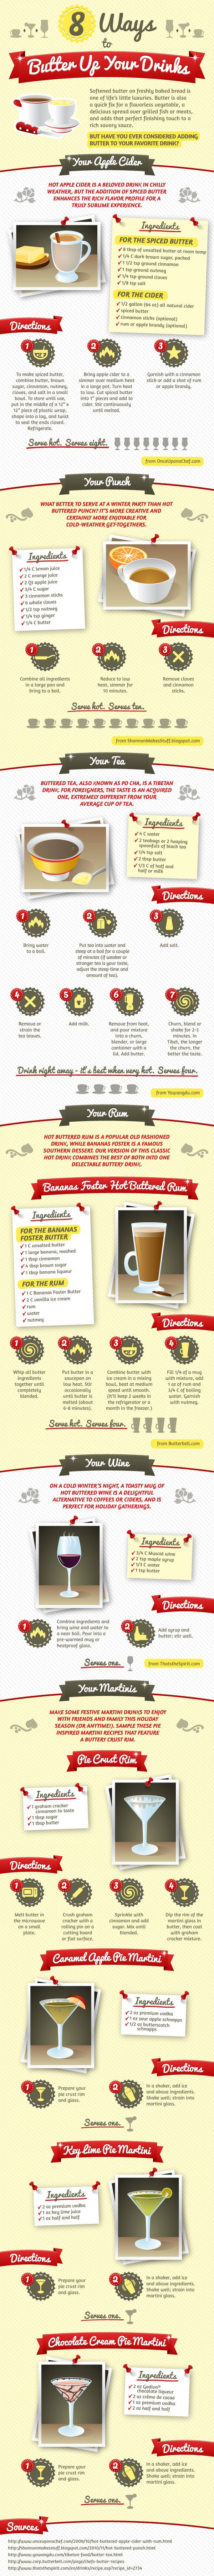 8 Ways to Butter Up Your Drink